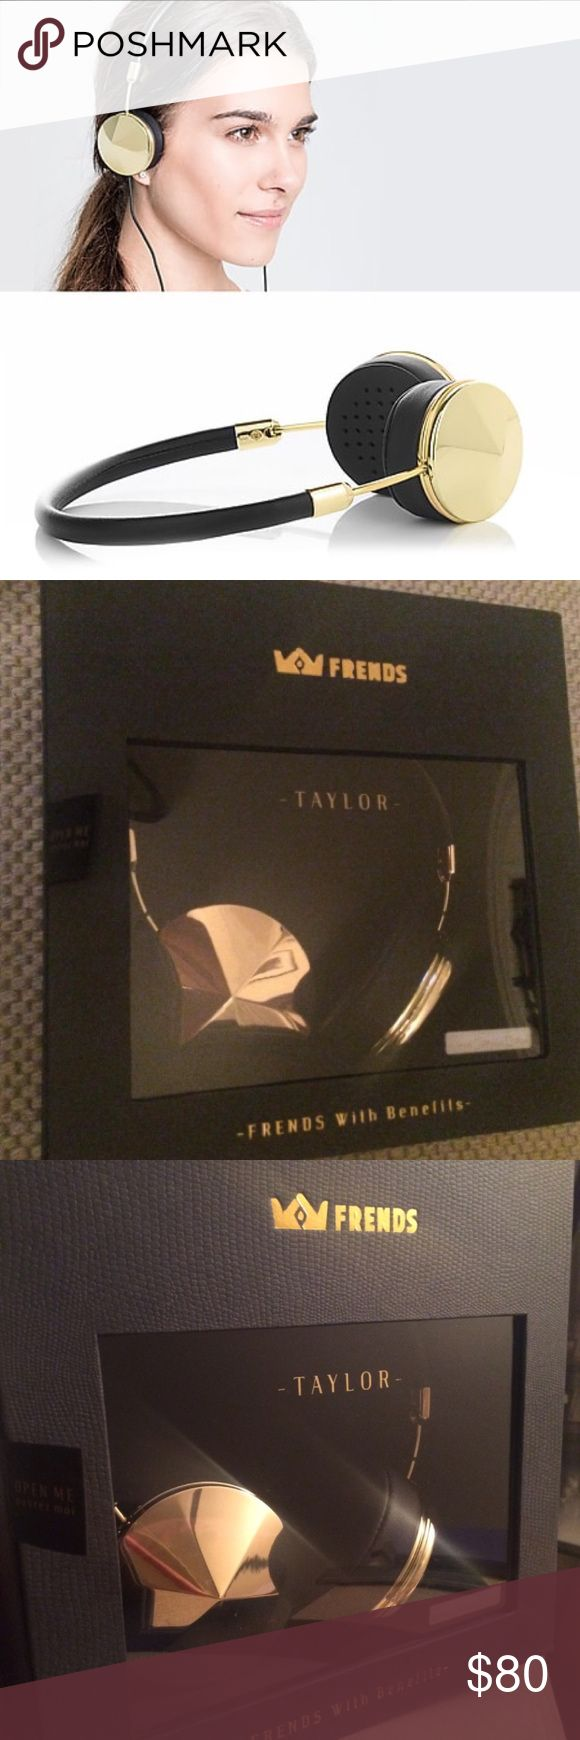 "Frends gold headphones Brand new FRENDS headphones for sale in ""Taylor"" Gold-Black. The headphones are still in the original box and have never been opened. Originally priced at $200 Accessories"